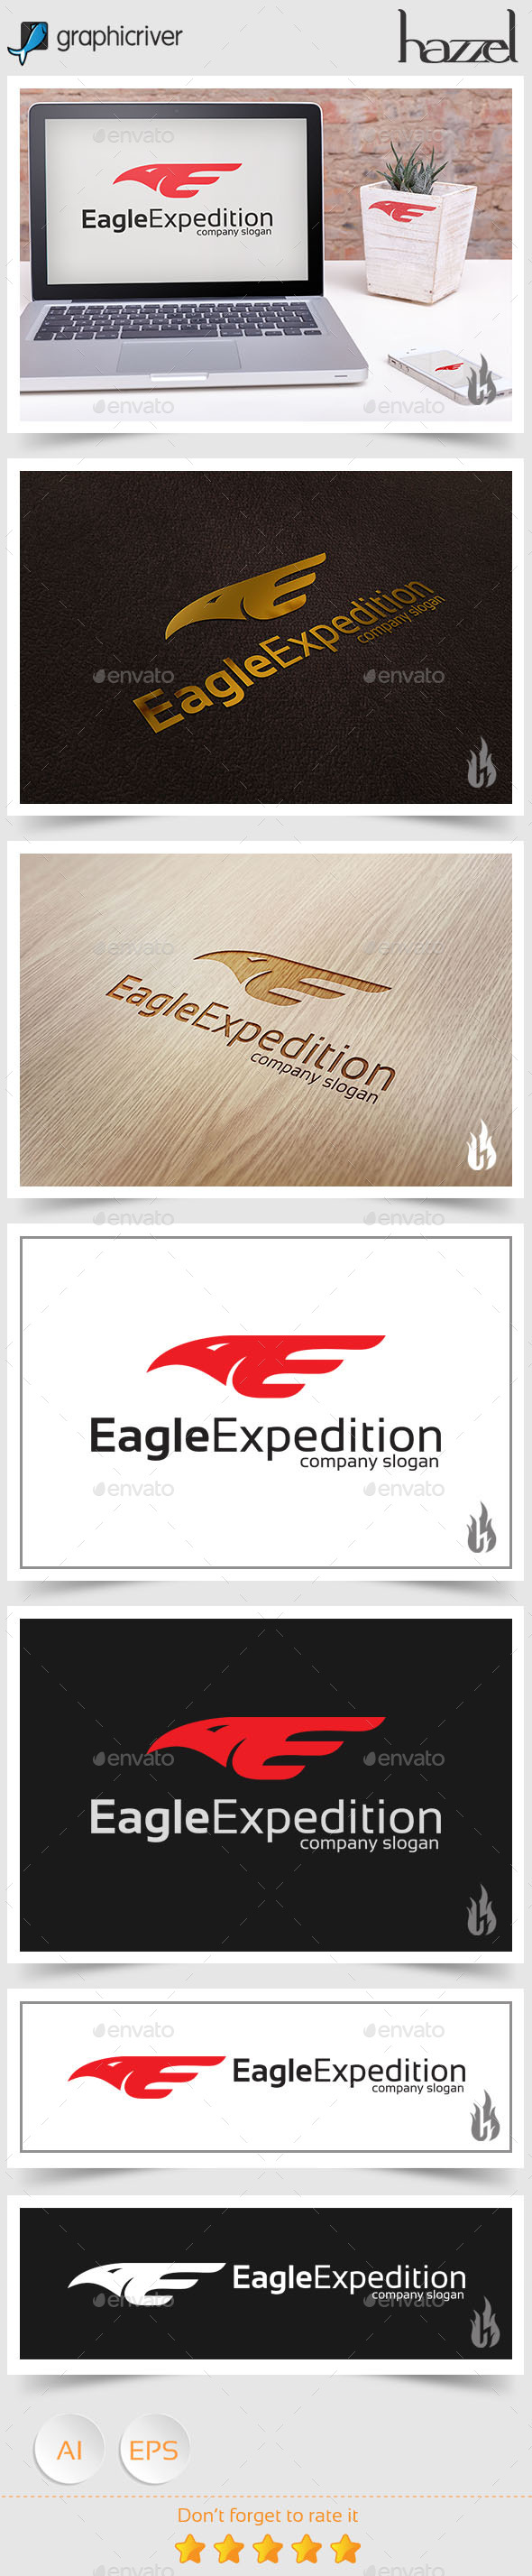 GraphicRiver Eagle Expedition Logo 8790682